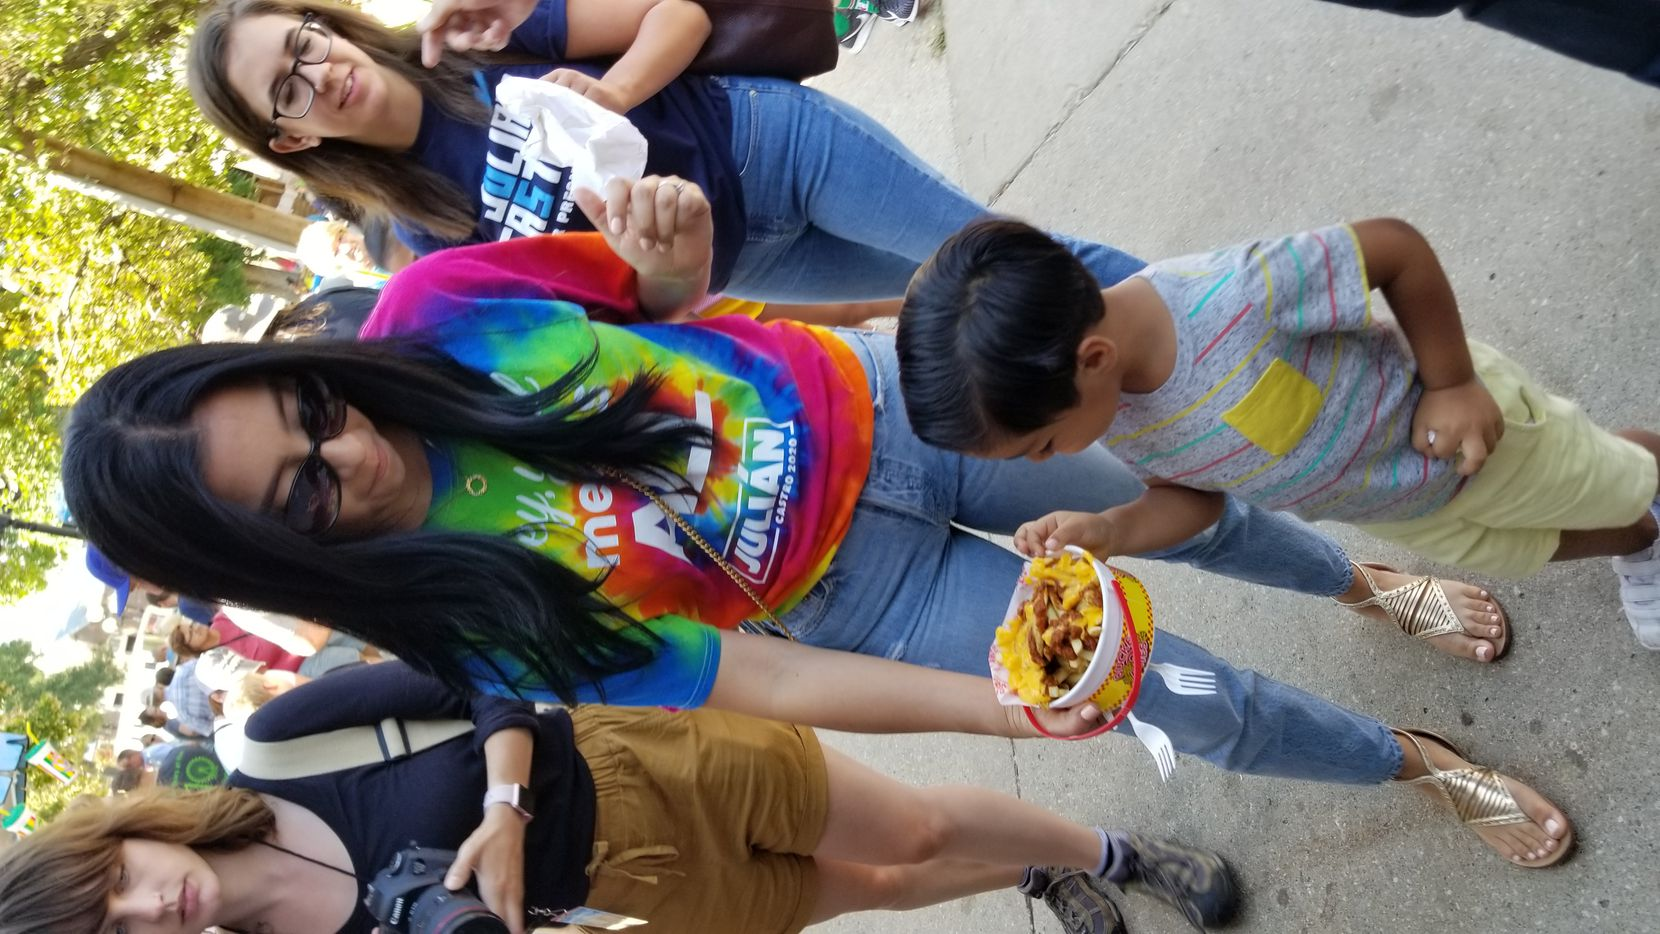 Erica Castro offers chili cheese fries to her son Cristián, 4, at he Iowa State Fair on Aug. 9, 2019, as husband Julián Castro stumps nearby for president.